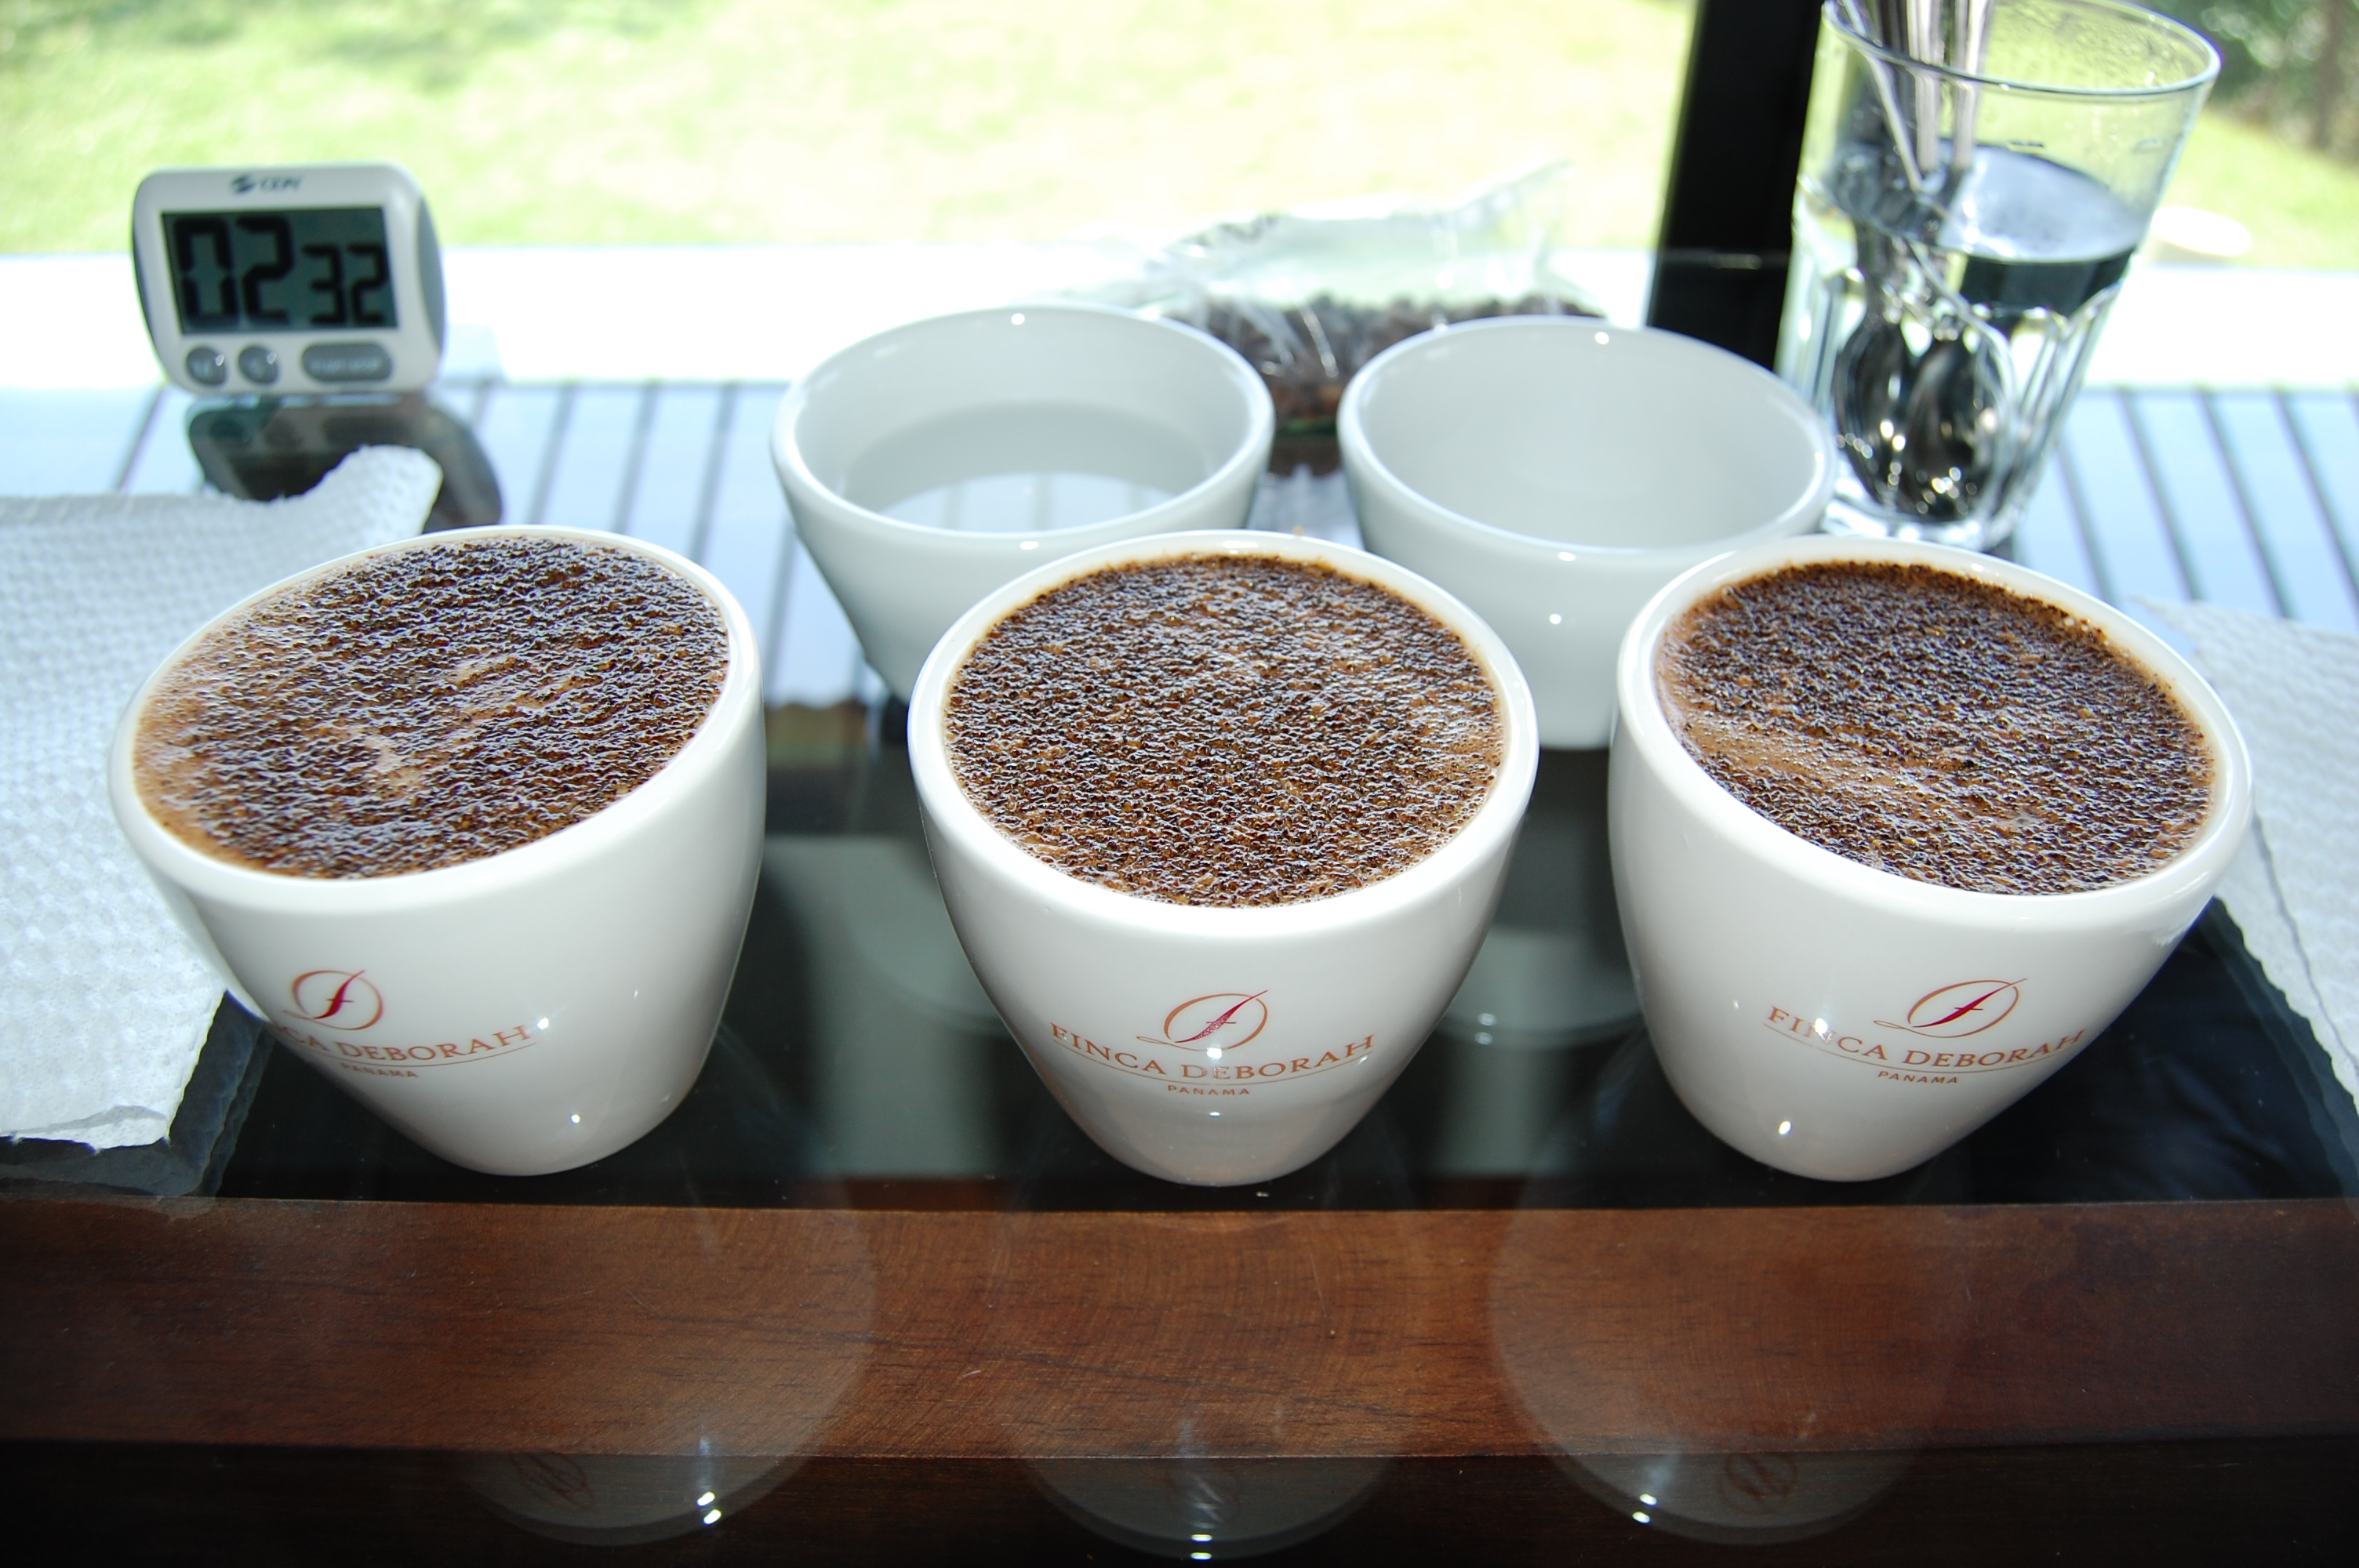 Cupping Finca Deborah Geisha Coffee from Panama.